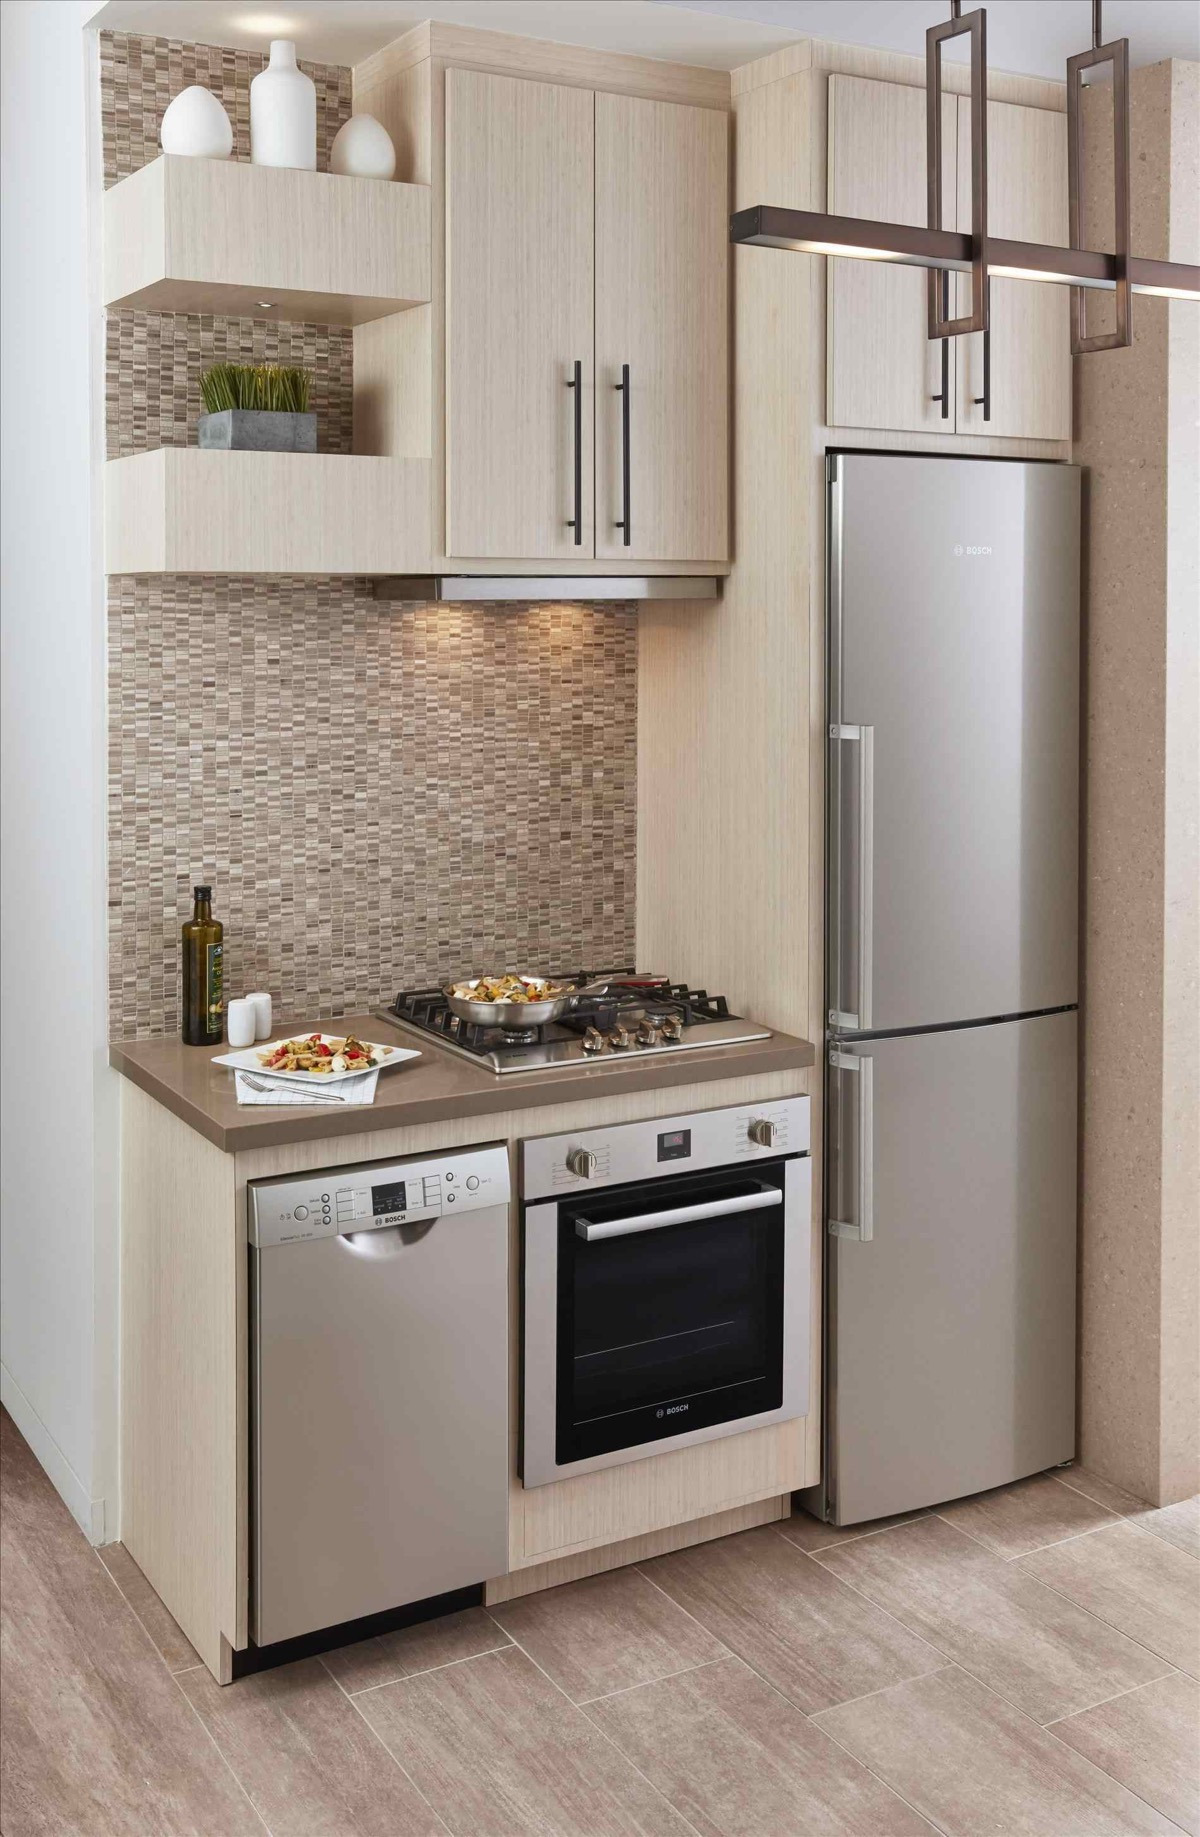 Beautiful Small Kitchen Ideas Fresh 50 Splendid Small Kitchens and Ideas You Can Use From them